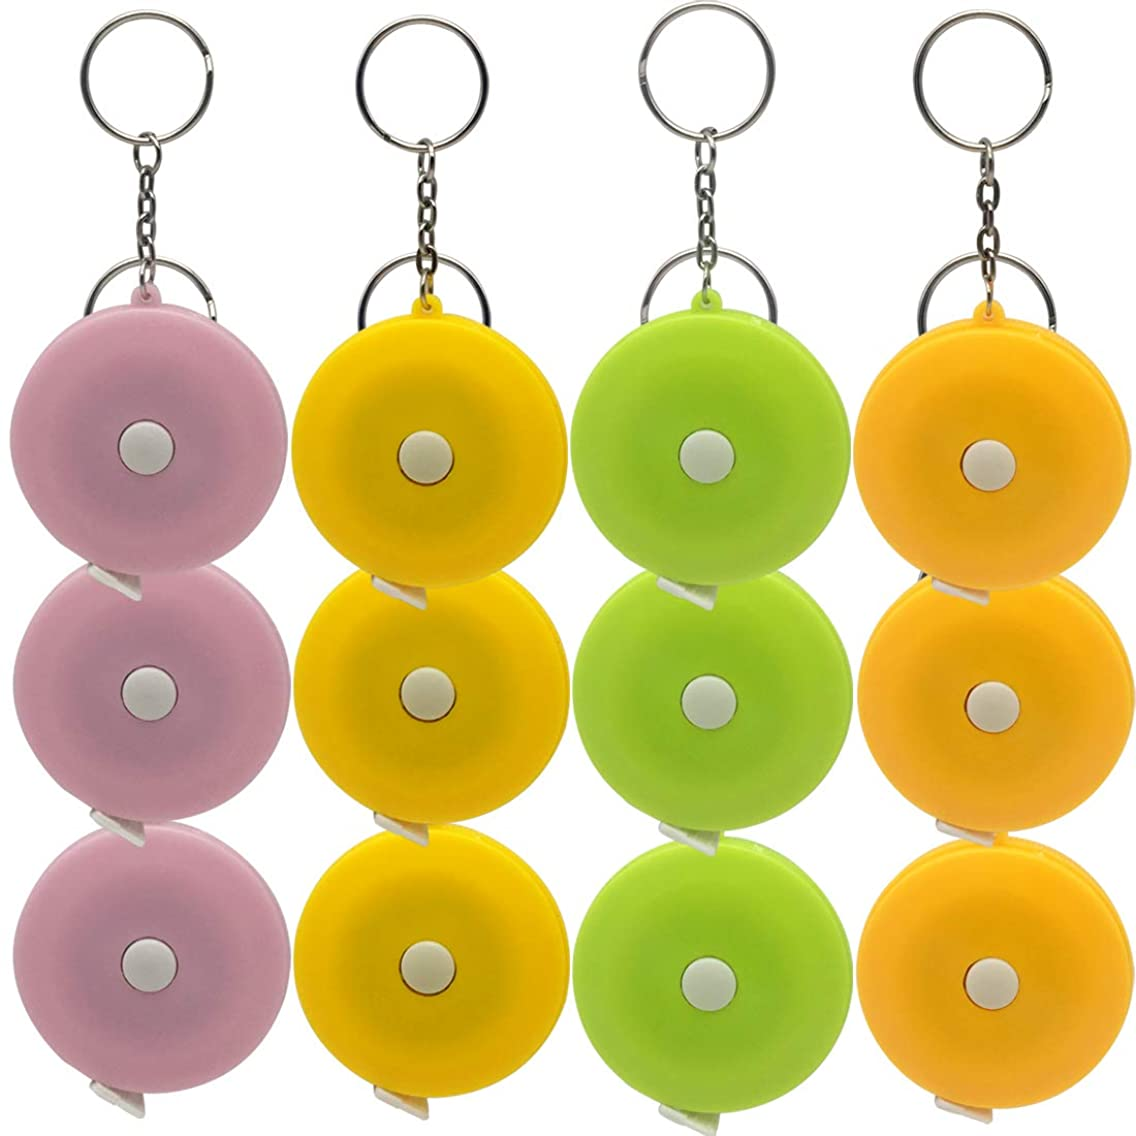 12 Pack Key Chain Tape Measure 150cm 60 Inch Push Button Retractable Measuring Tape for Body Measurements, Double-Sided Tailor Cloth Ruler by Pantinue